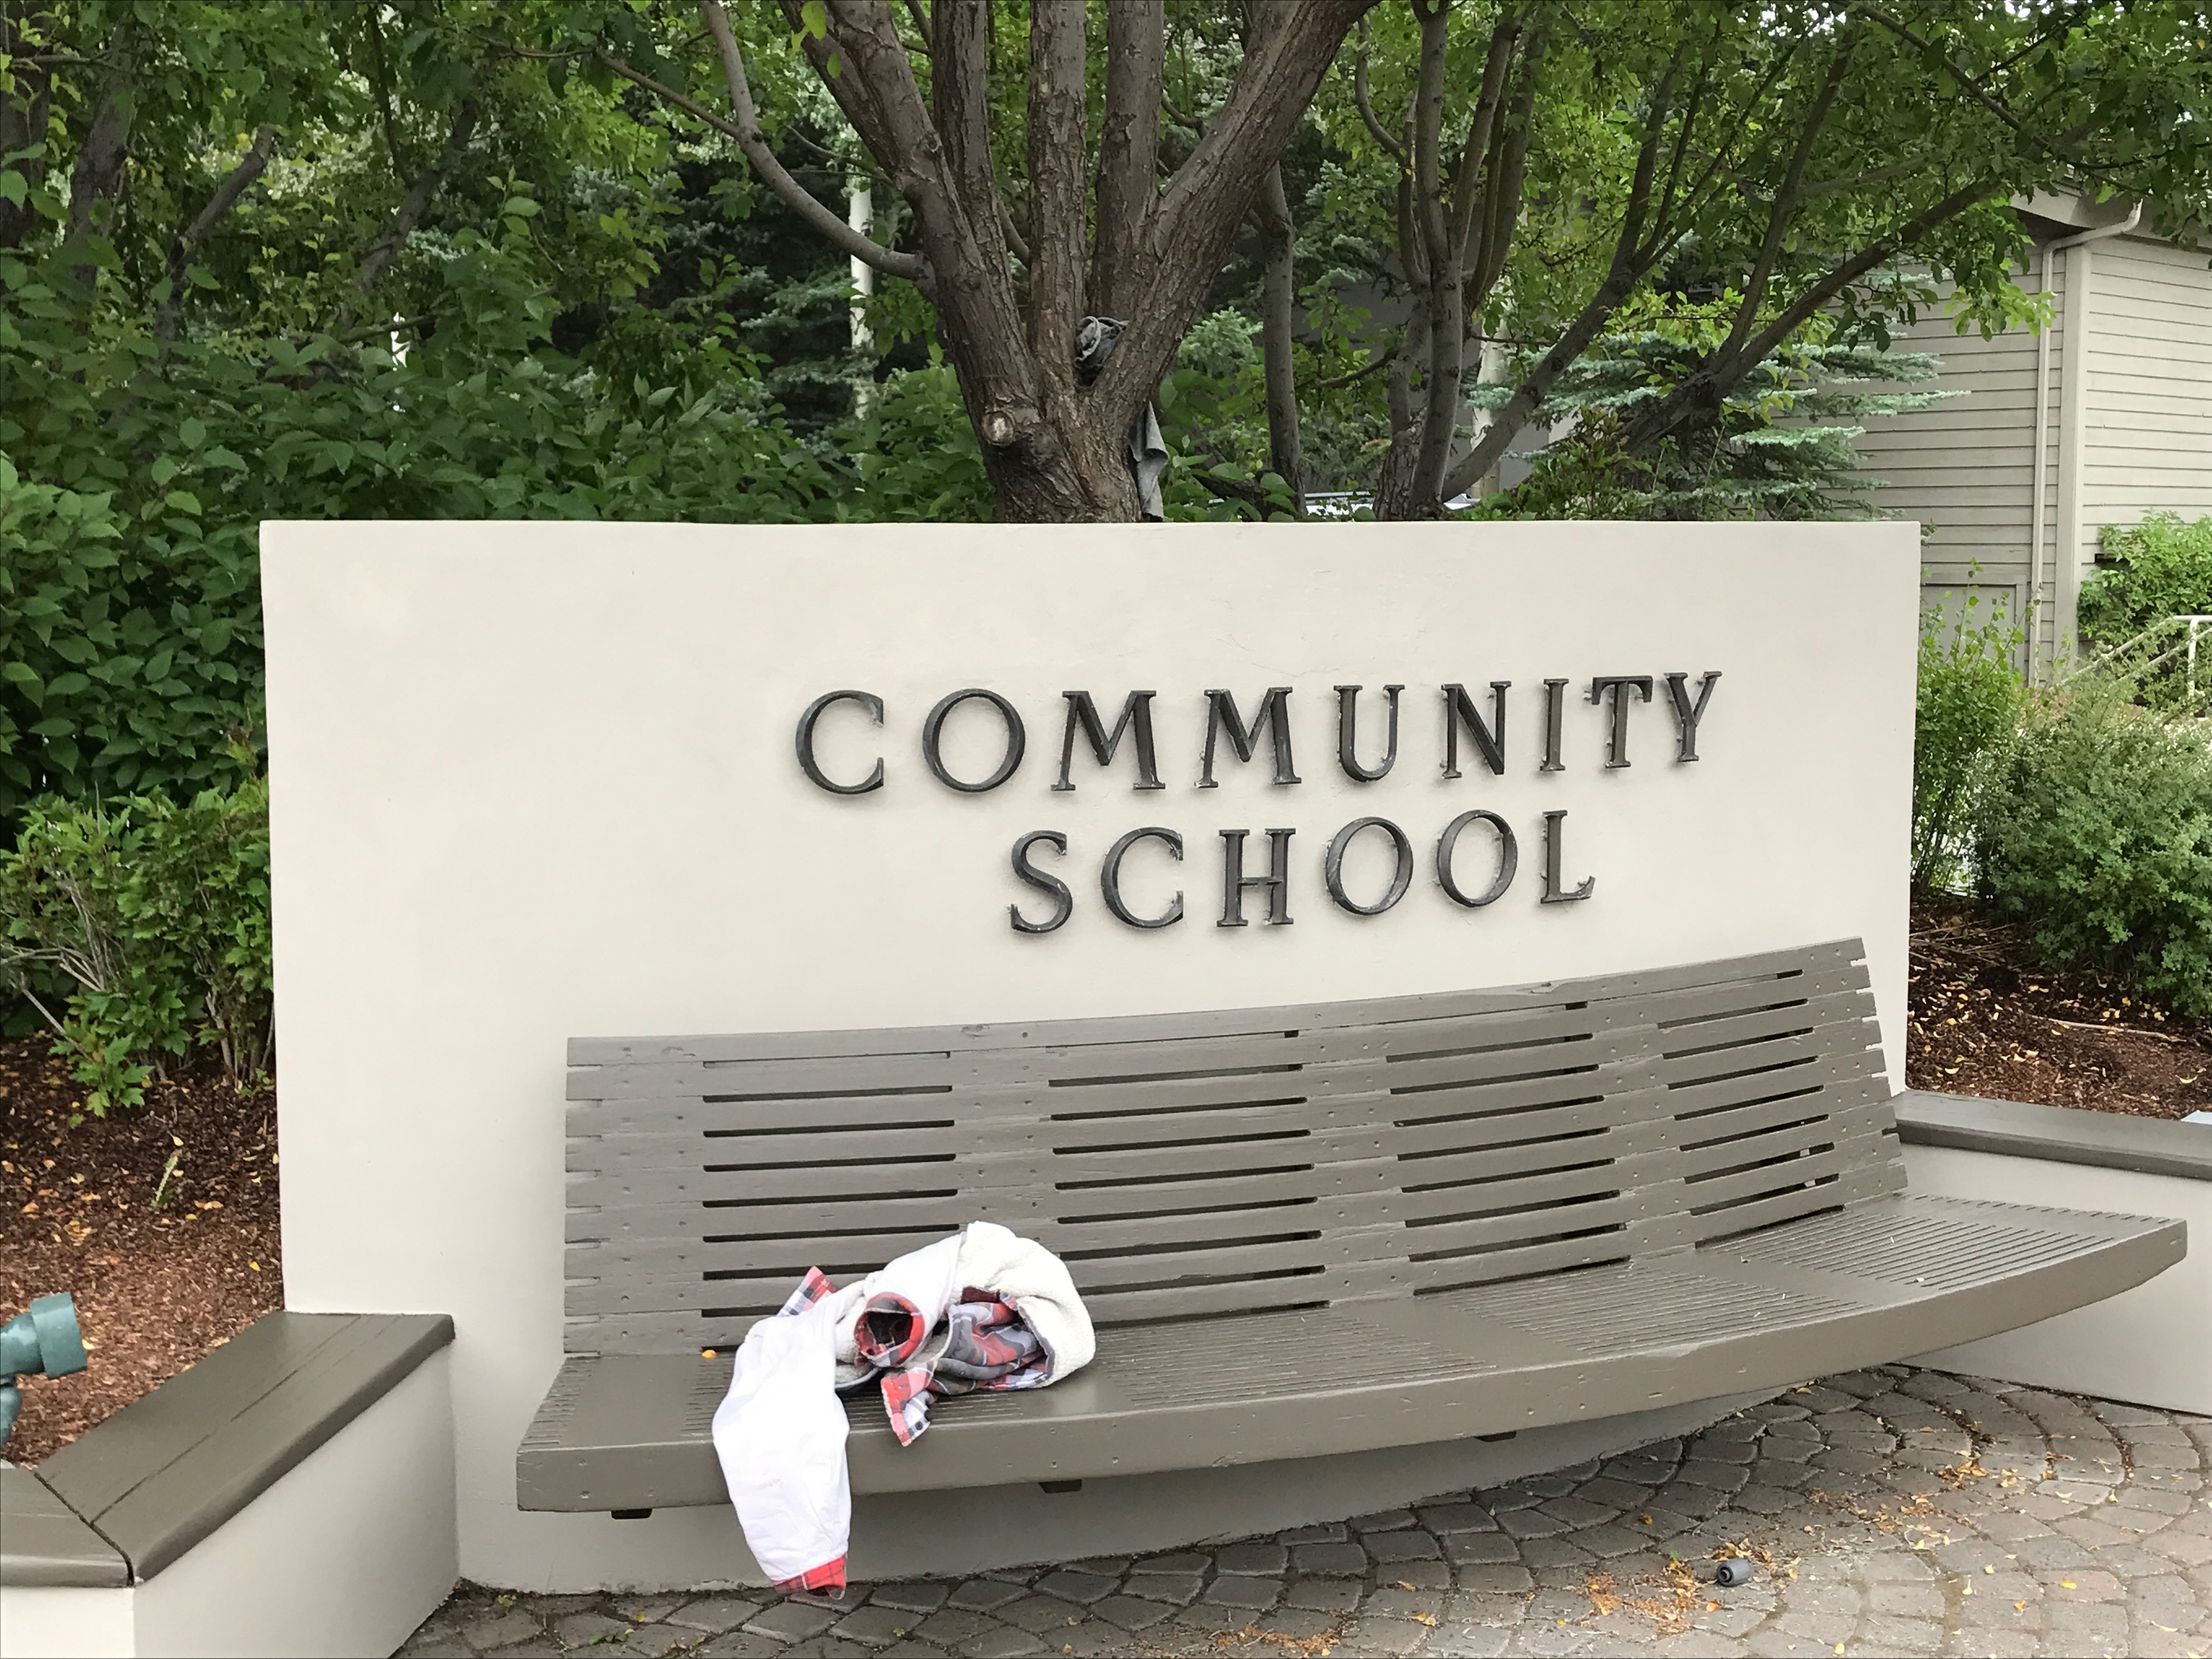 Community School, Sun Valley: They Have Already Broken Parts of the Outdated K-12 Operating System